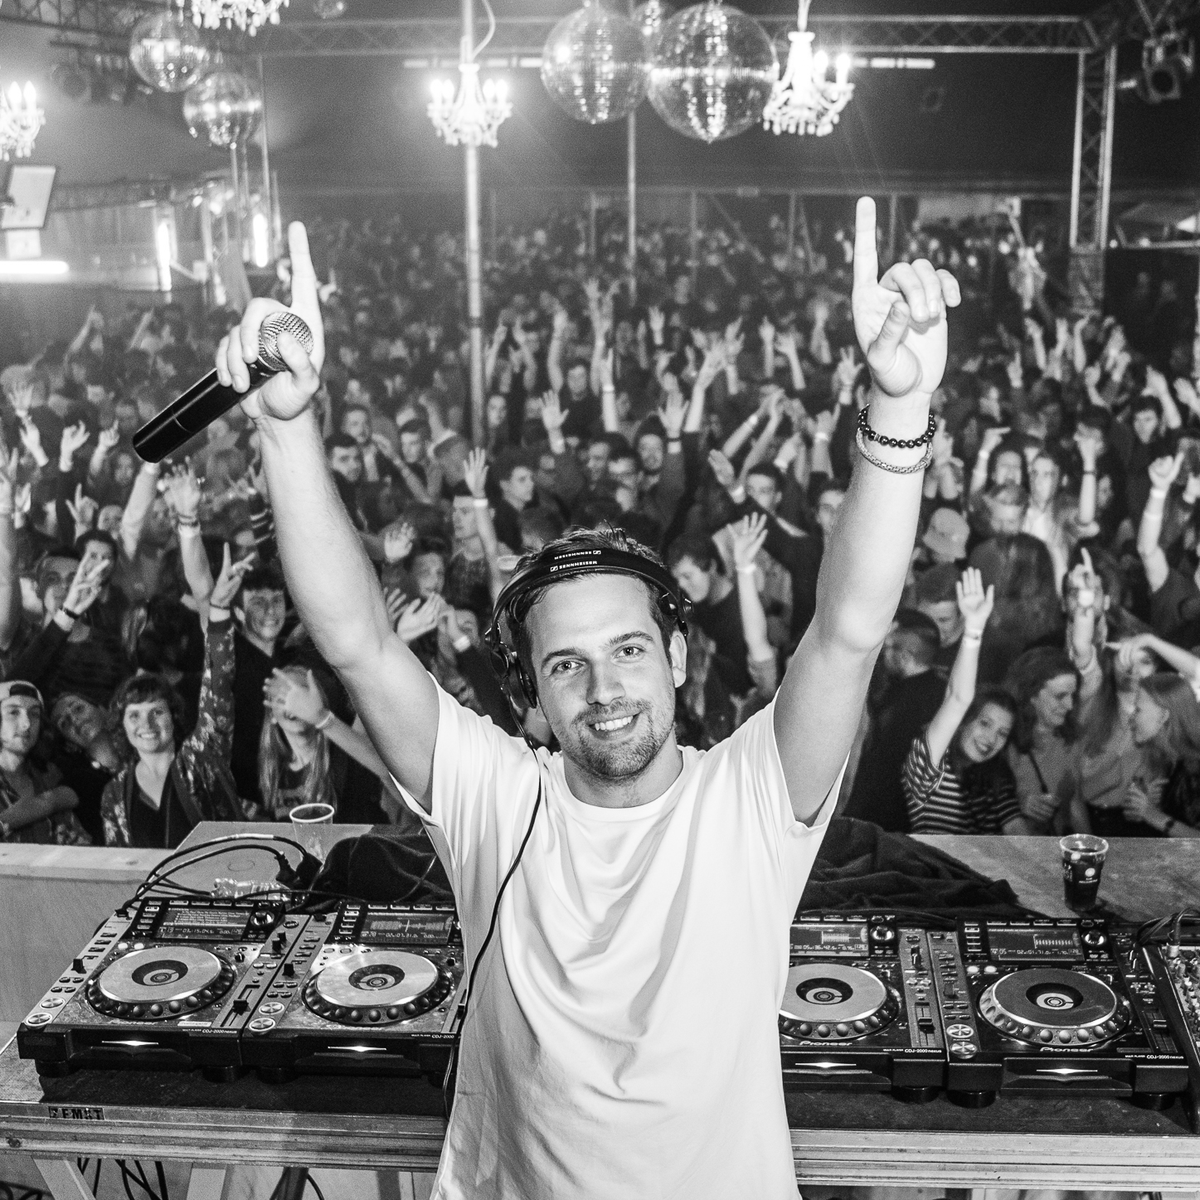 """""""Put your hands up if you want a new remix of '𝗦𝗲𝗺 𝗧𝗵𝗼𝗺𝗮𝘀𝘀𝗼𝗻 - 𝗠𝗶𝘀𝘁𝗮𝗸𝗲𝘀'  Pre-save the new 𝗗𝗲𝗲𝗽 𝗠𝗶𝘅 here •   @semthomasson"""